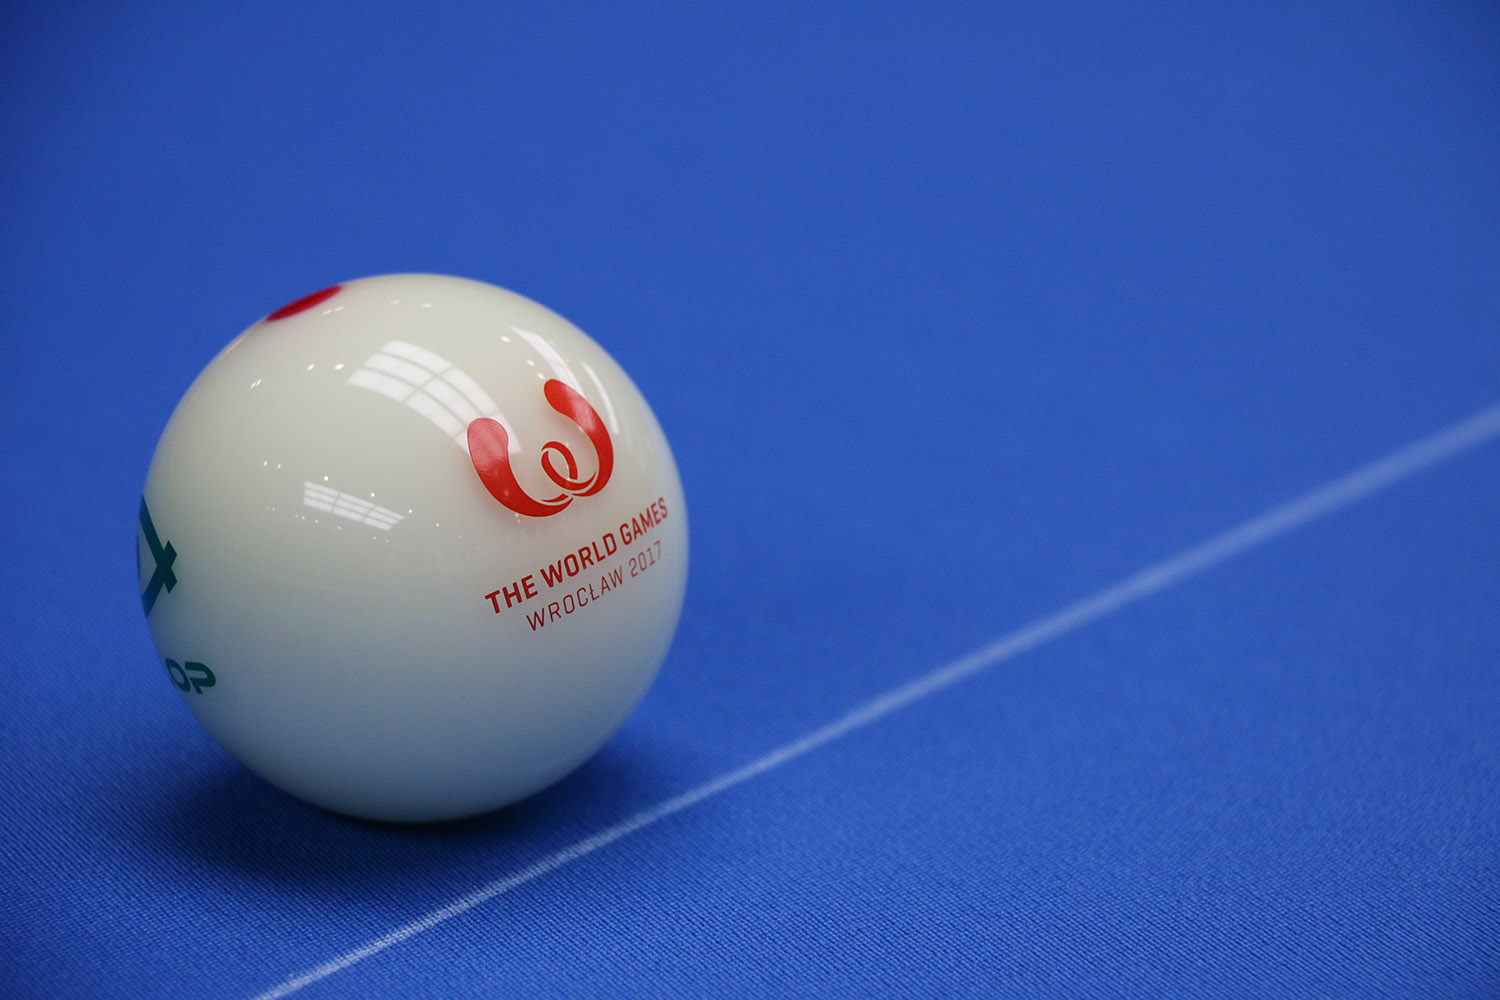 Photo of cue ball